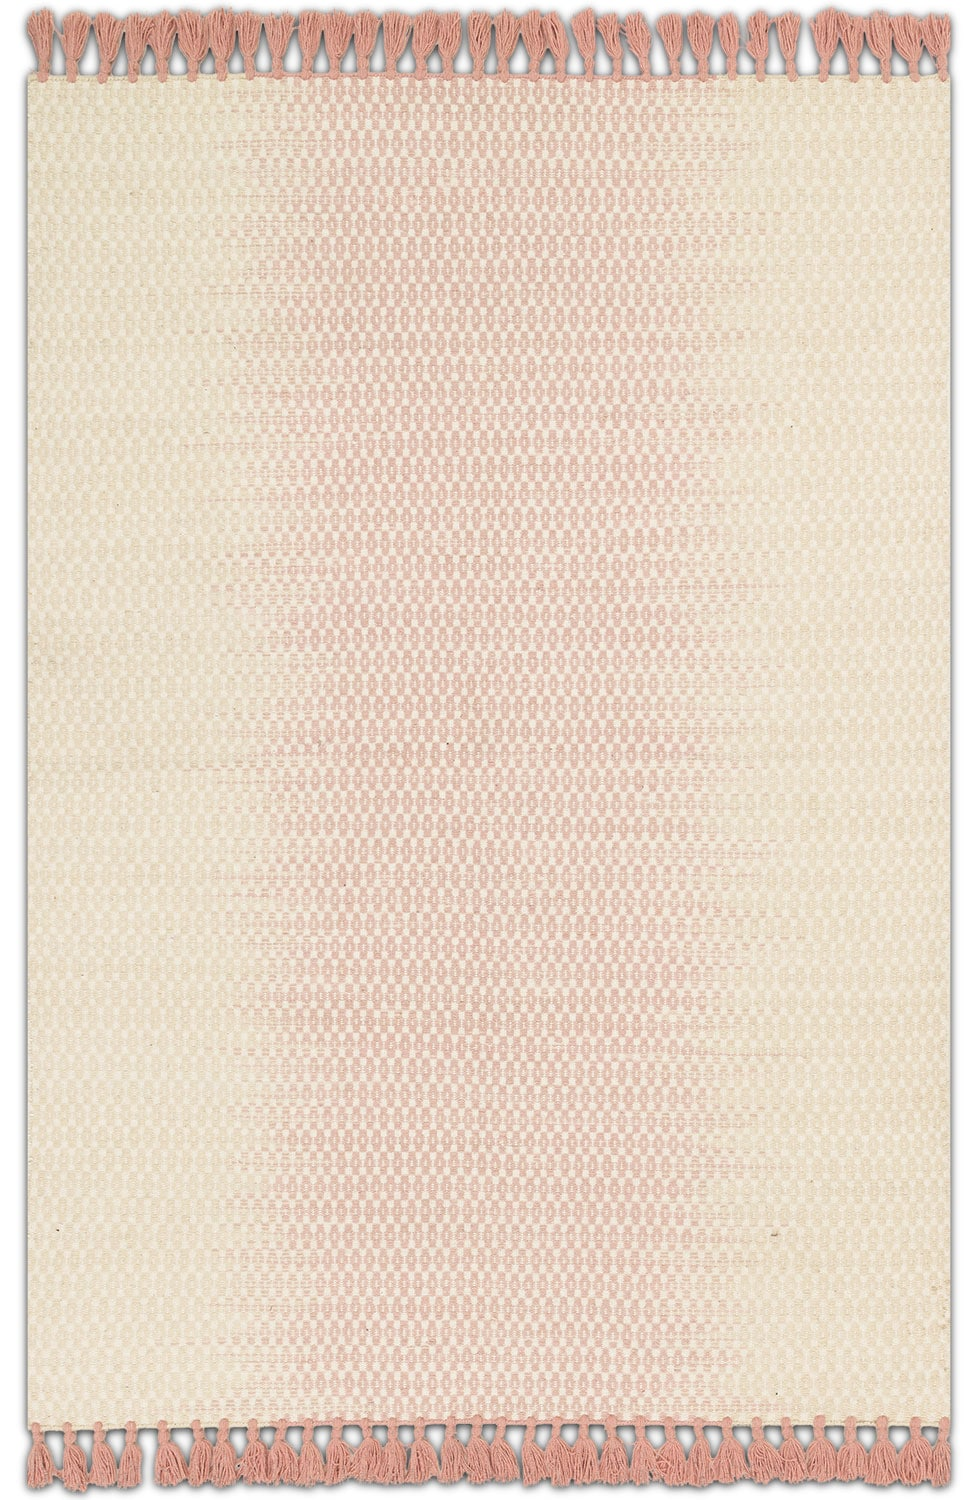 Rugs - Chantilly 4' x 6' Rug - Ivory and Blush